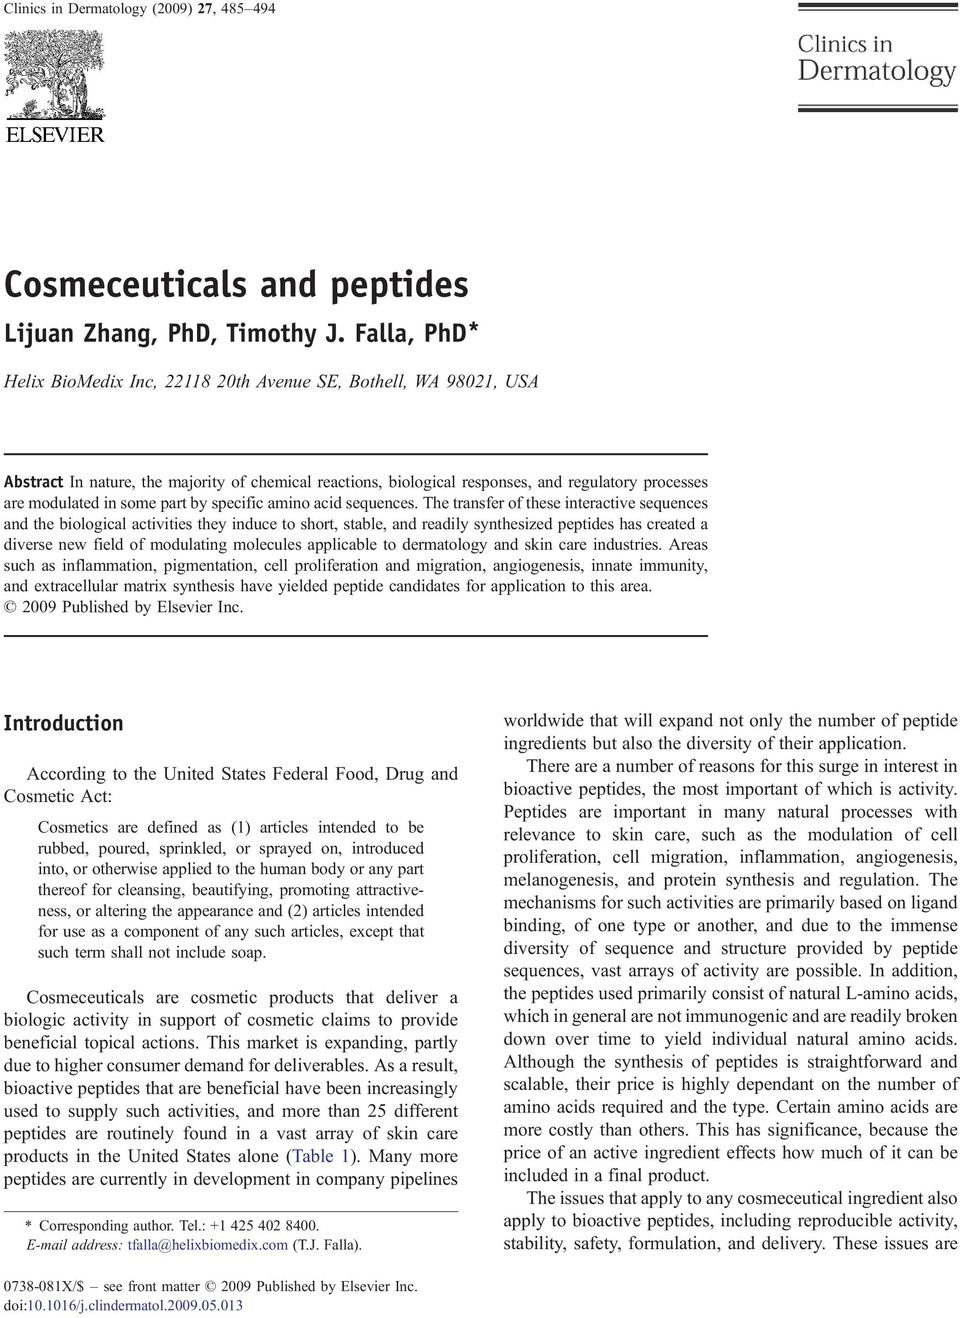 Cosmeceuticals and peptides - PDF